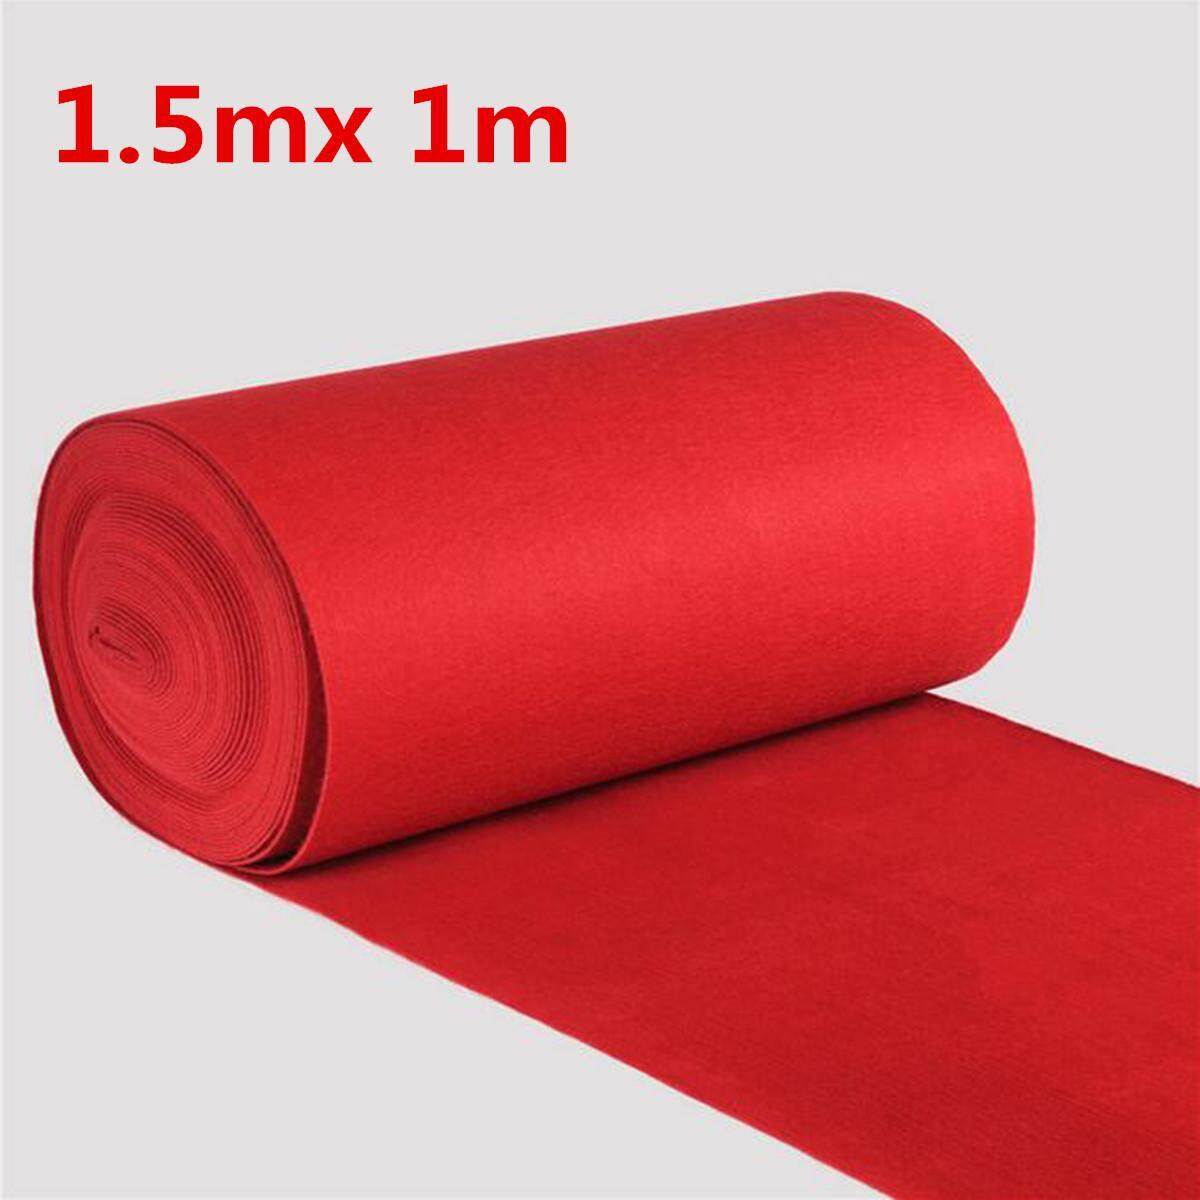 4 Sizes Celebrity Floor Runner Red Carpet Party Wedding Disposable Scene Decoration0.85mm